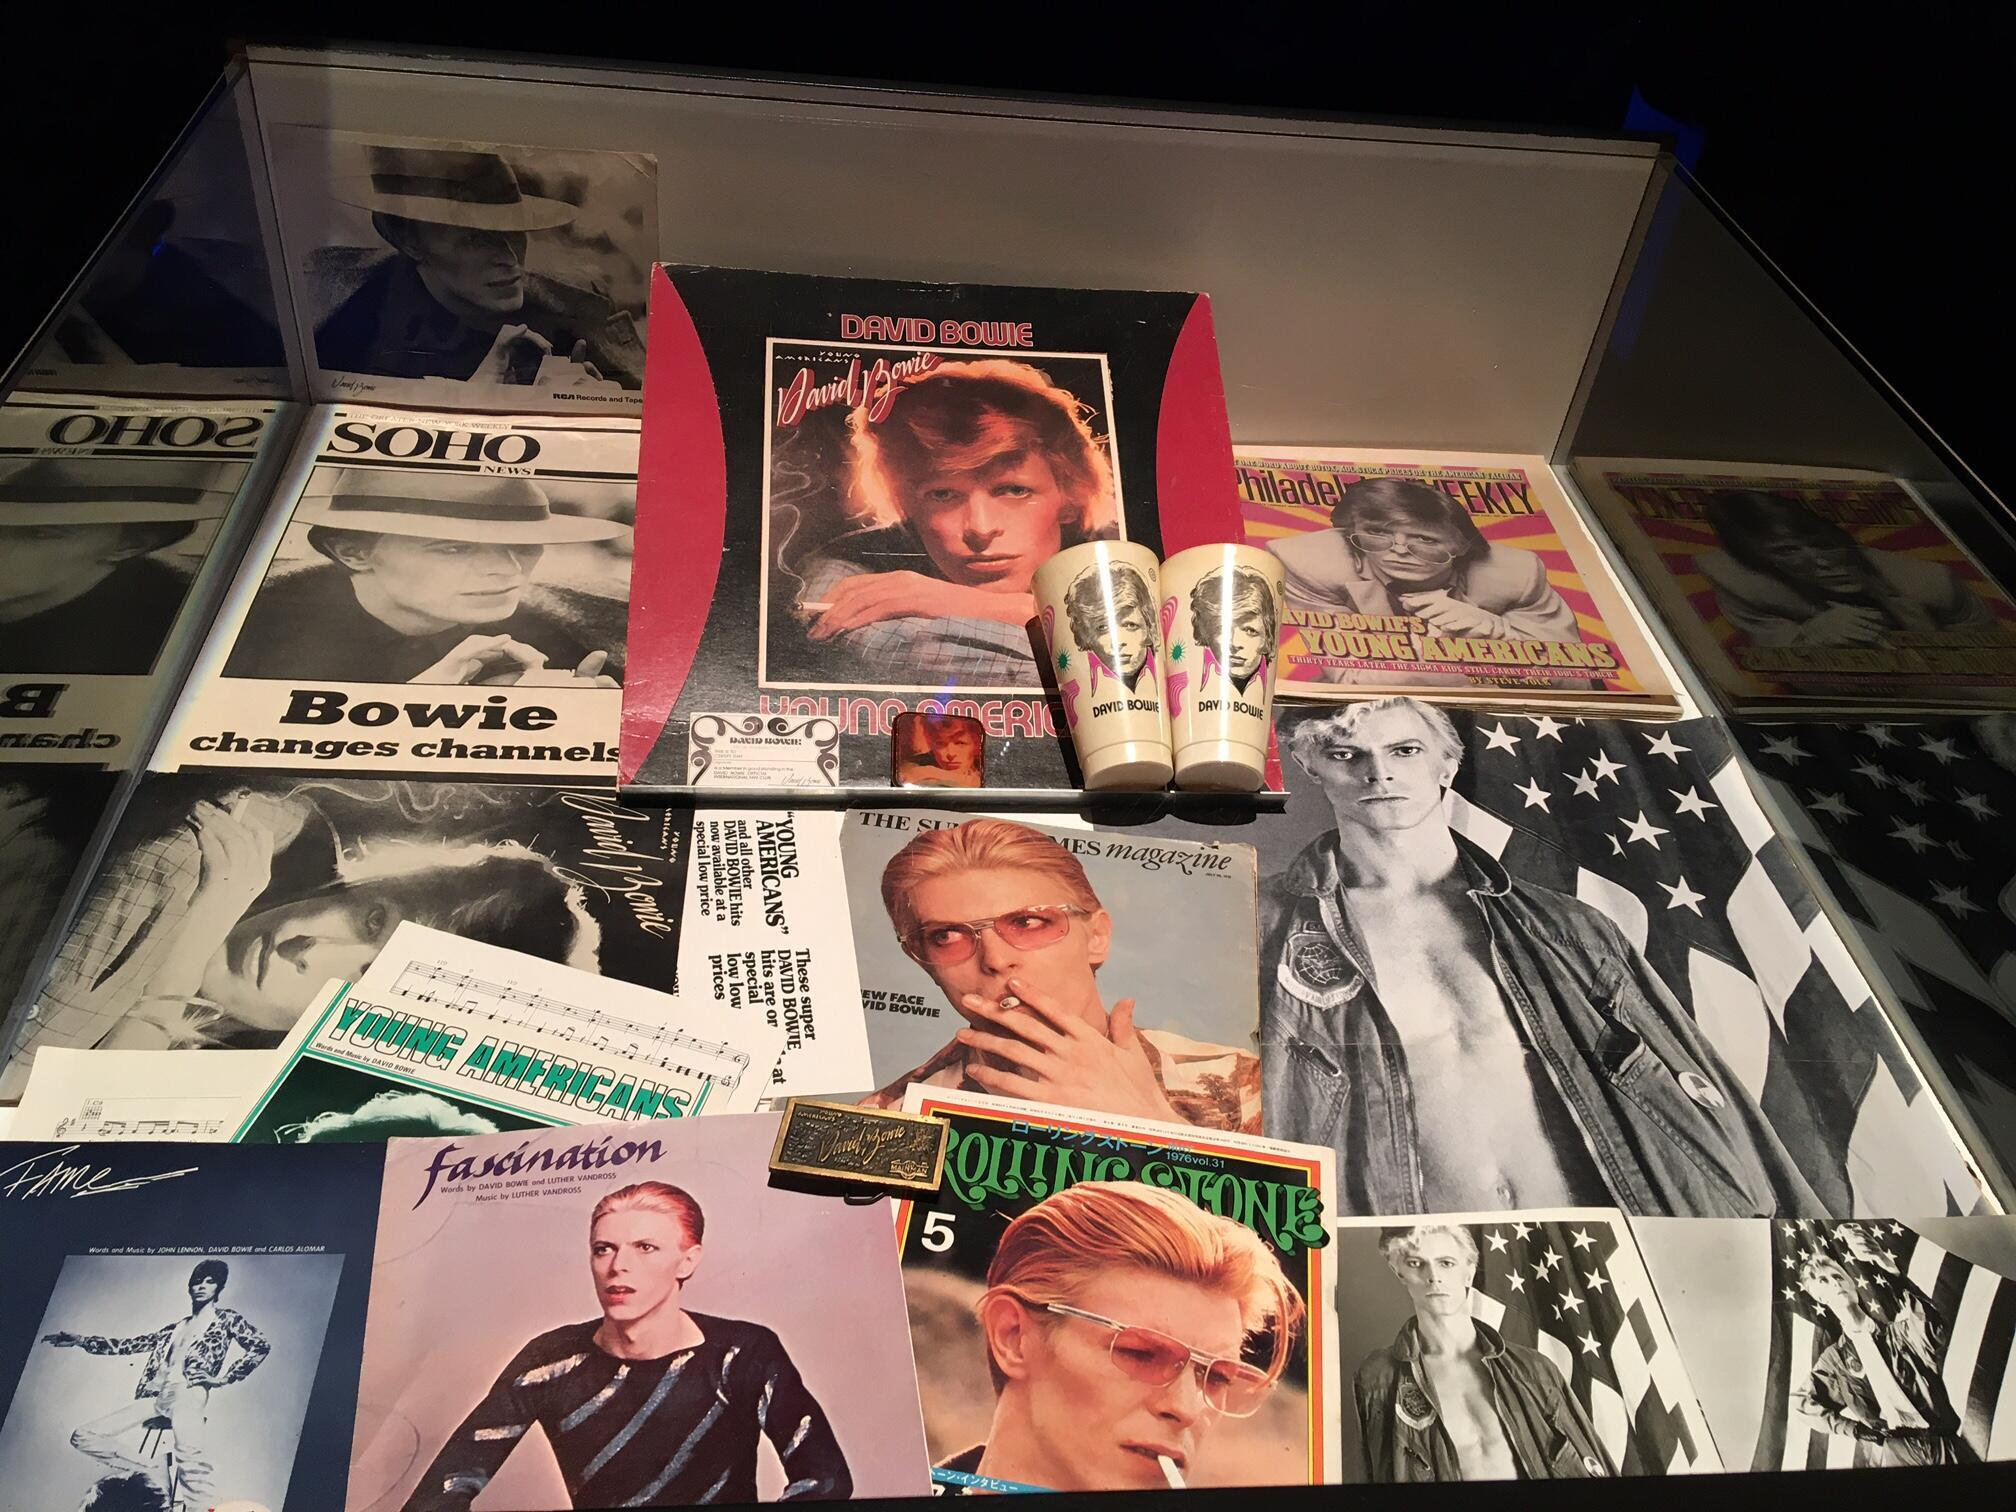 Bowie Odyssée Young Americans merchandising